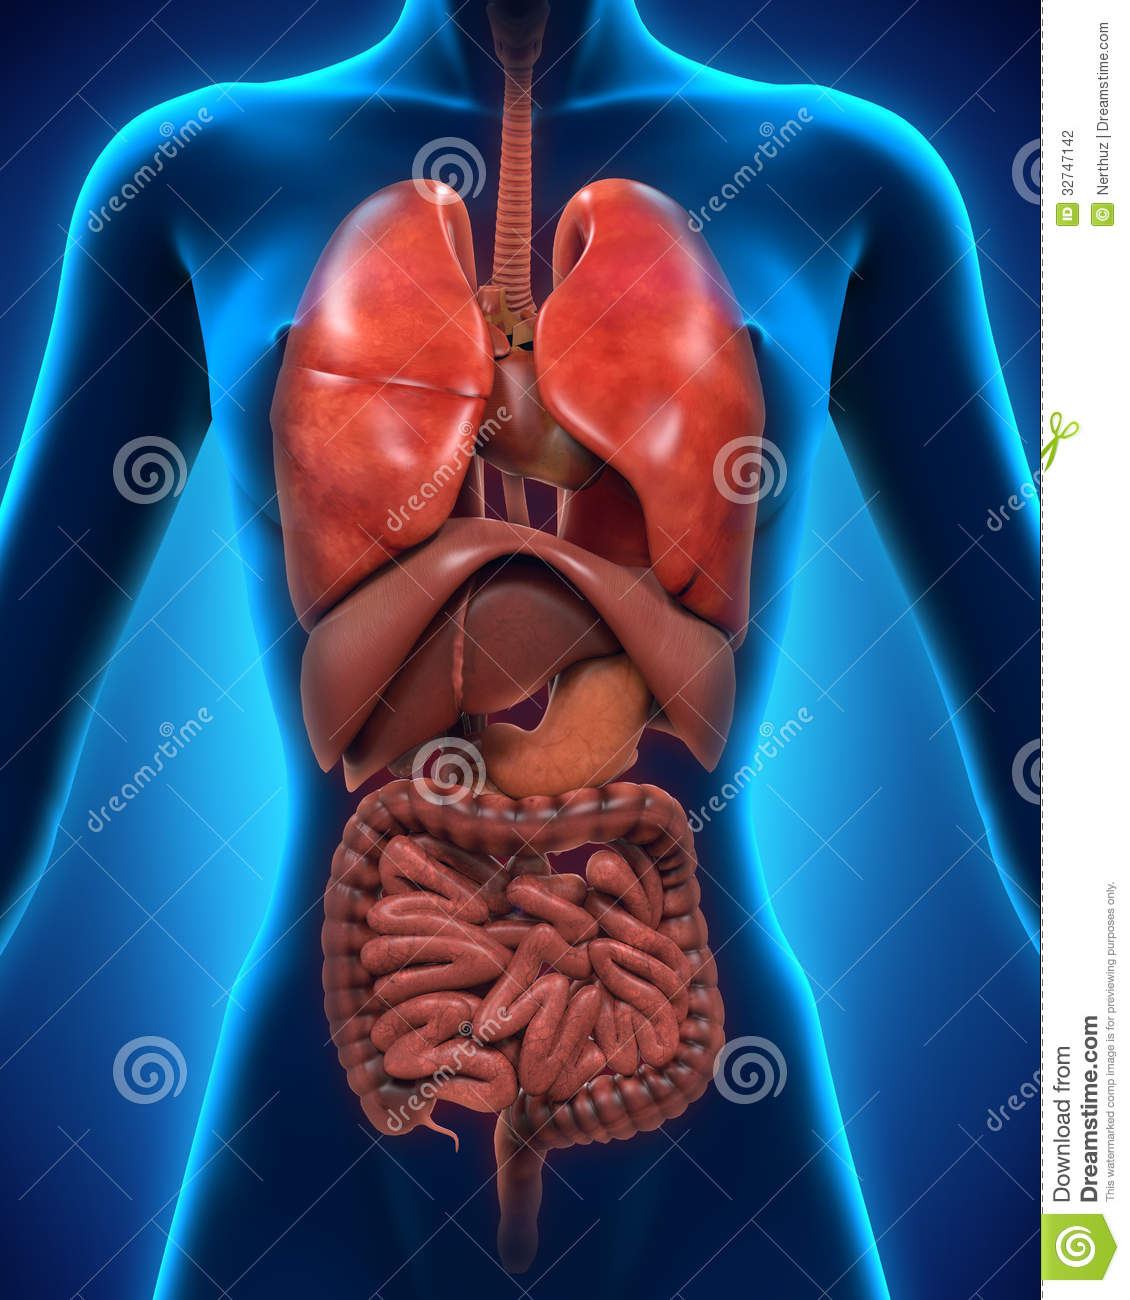 Anterior view of human body stock illustration illustration of download anterior view of human body stock illustration illustration of human biology 32747142 ccuart Image collections